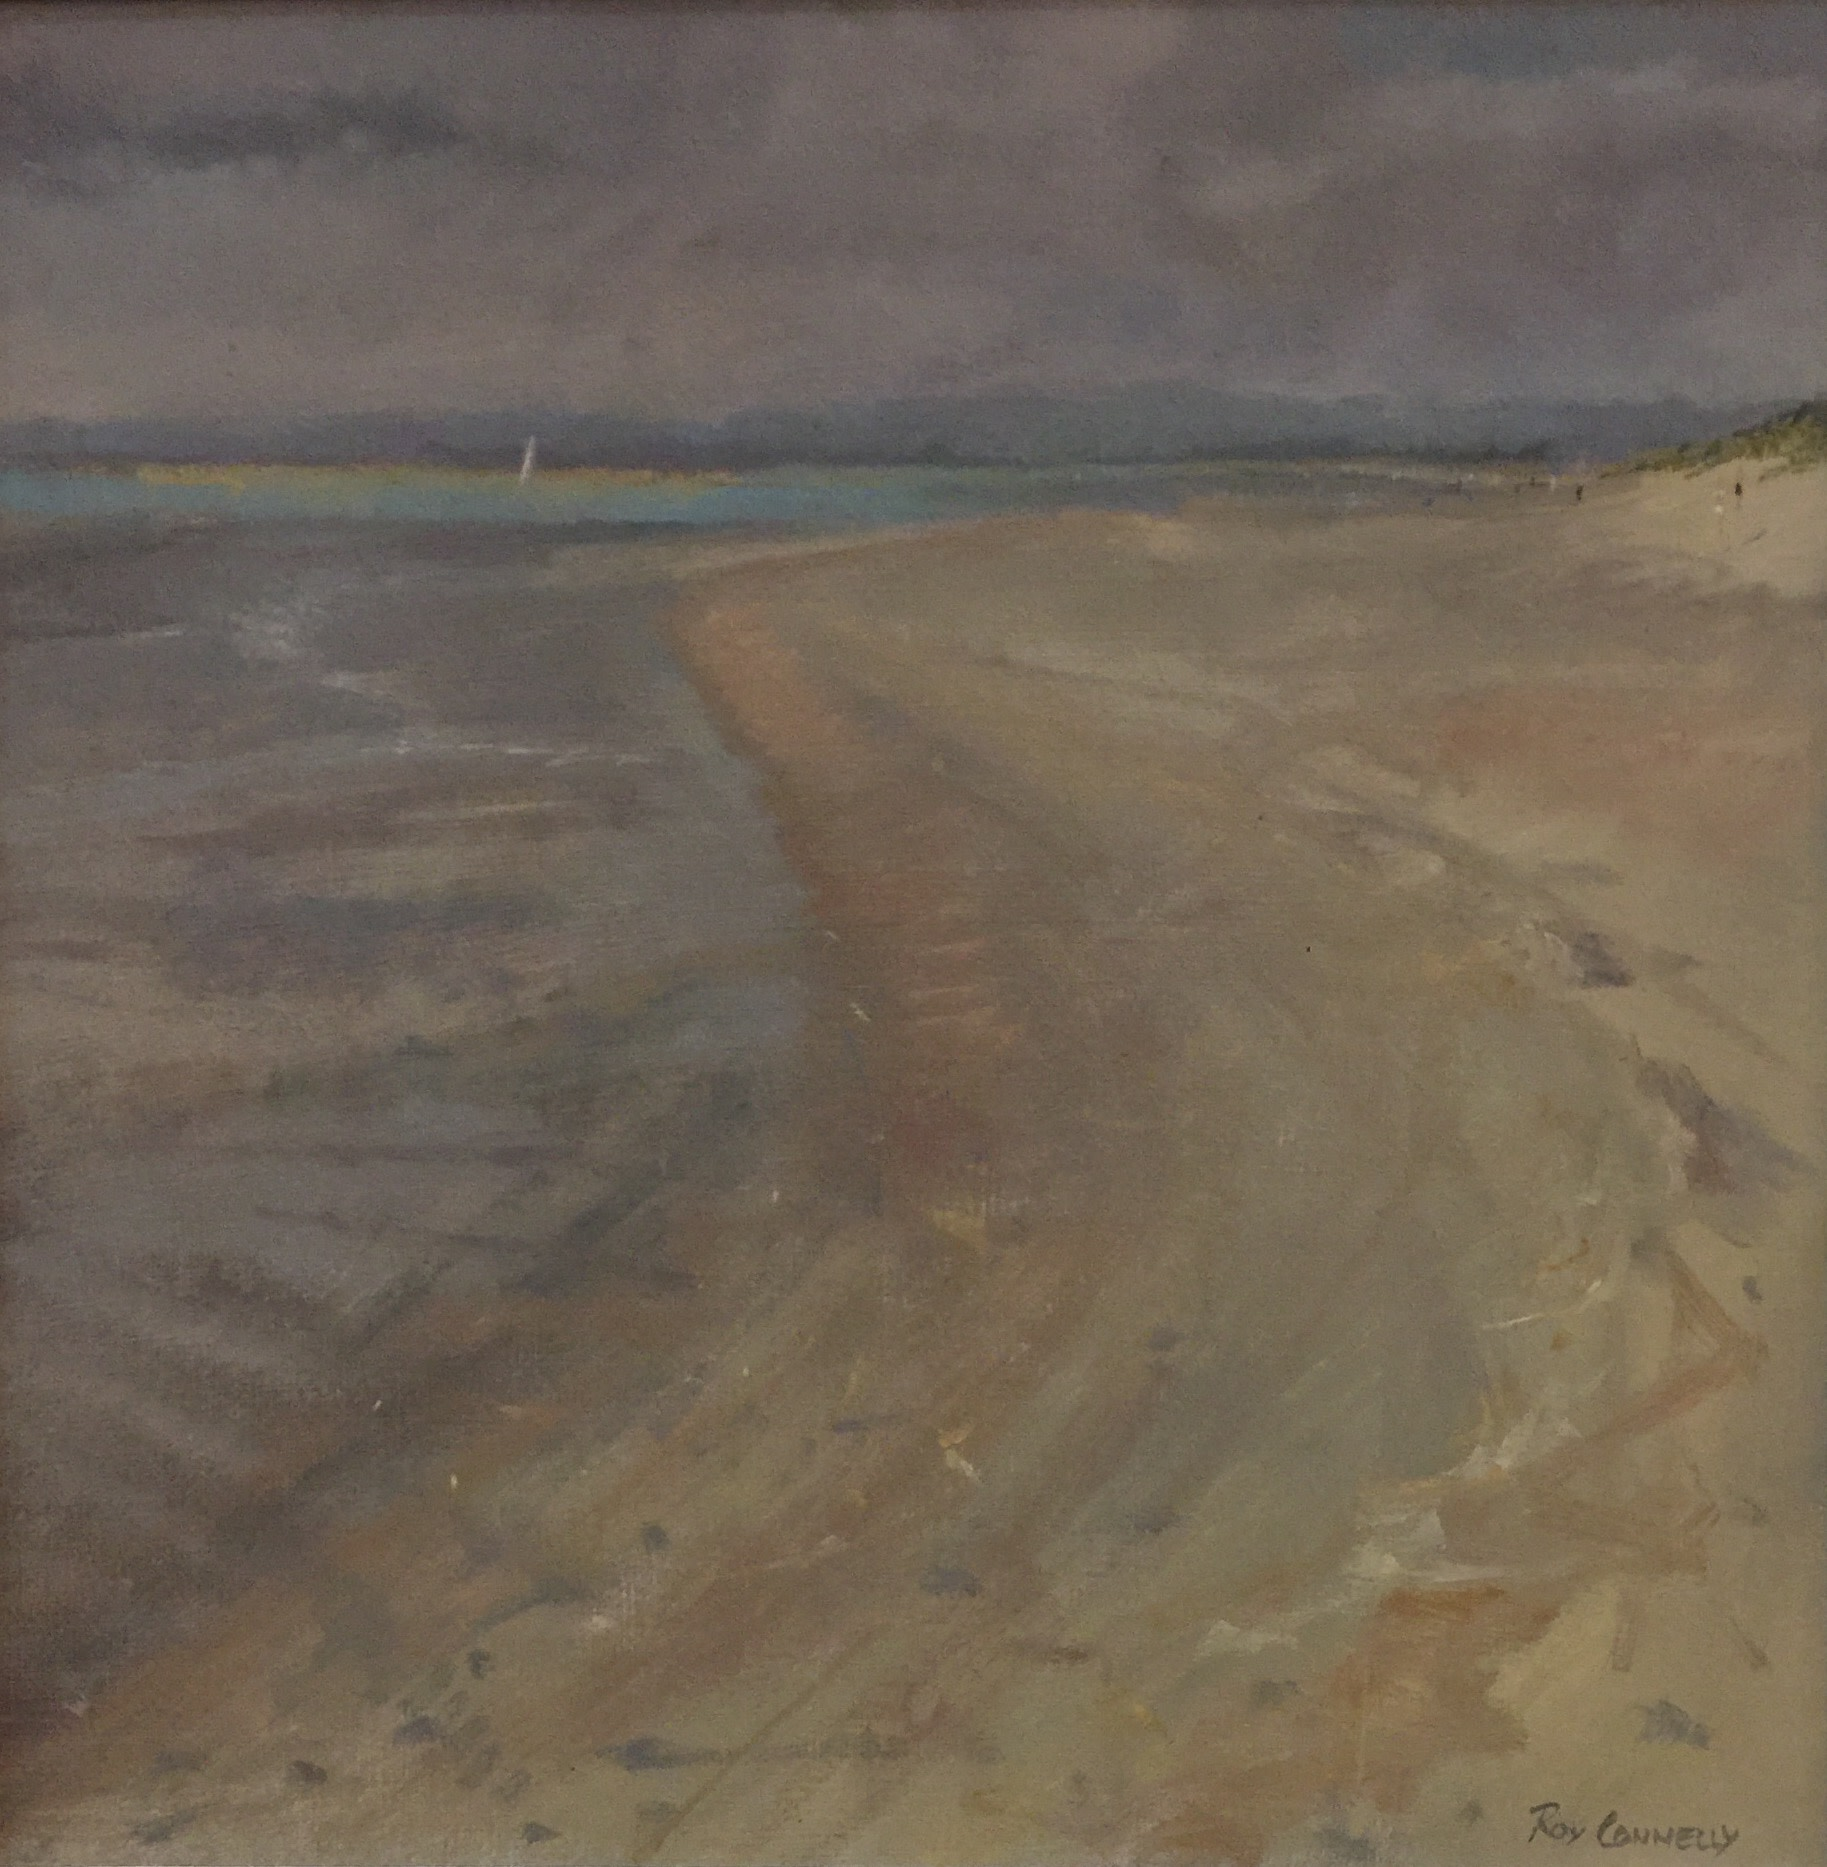 "<span class=""link fancybox-details-link""><a href=""/artists/63-roy-connelly/works/324-roy-connelly-east-head-and-west-wittering/"">View Detail Page</a></span><div class=""artist""><strong>Roy Connelly</strong></div> <div class=""title""><em>East Head and West Wittering</em></div> <div class=""medium"">Oil on Board (framed)</div> <div class=""dimensions"">30 x 30 cm</div><div class=""price"">£600.00</div>"